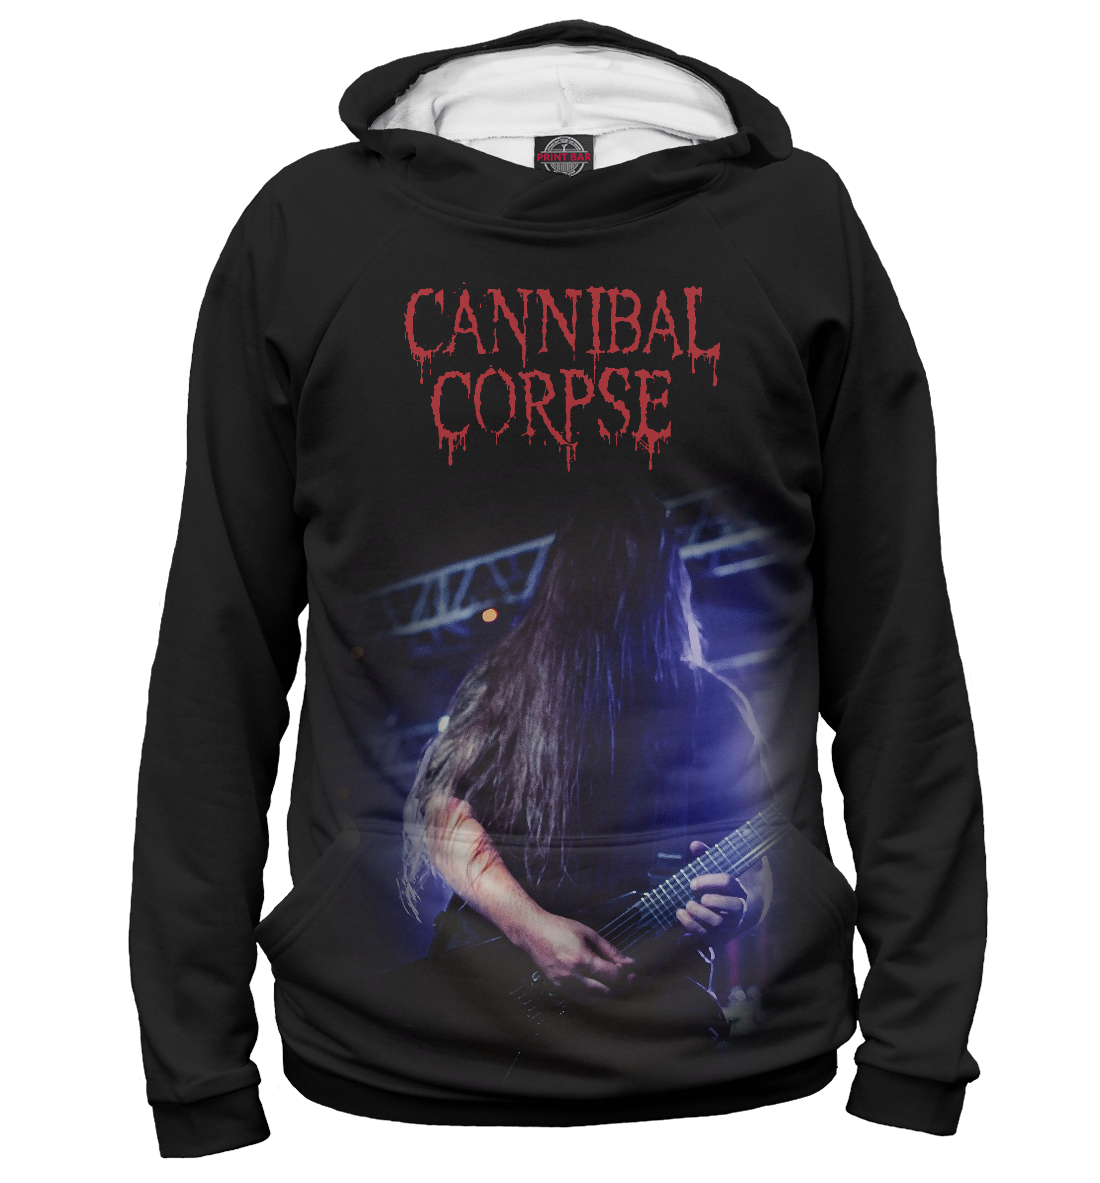 Купить Pat O'Brien (Cannibal Corpse), Printbar, Худи, MZK-364822-hud-2